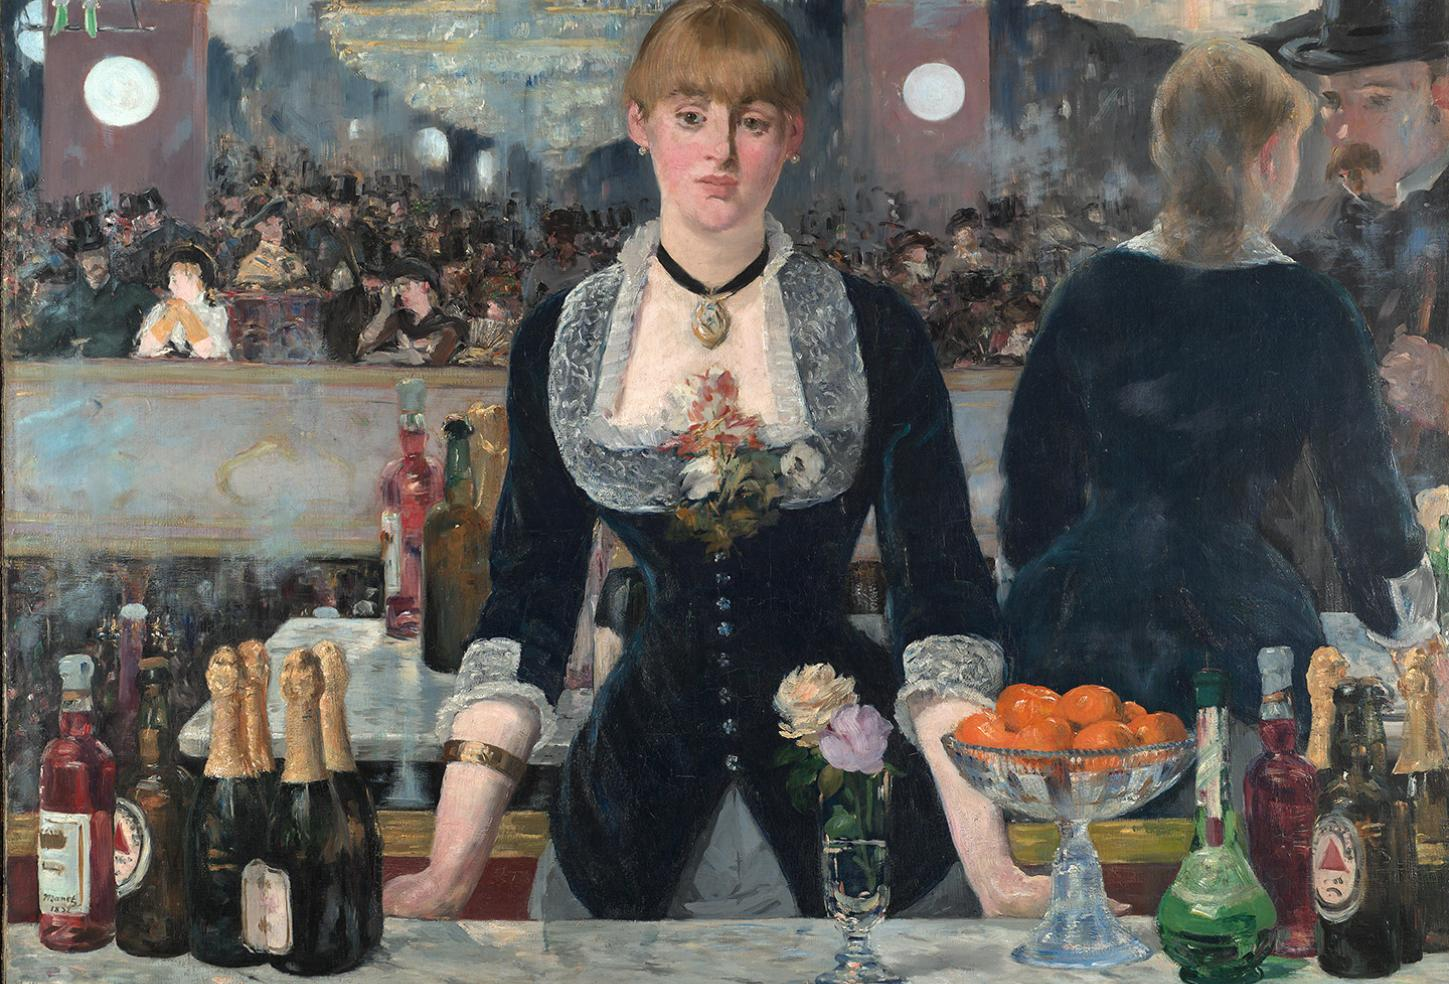 Edouard Manet (1832 – 1883), A Bar at the Folies-Bergère, 1882, Copyright: © The Samuel Courtauld Trust, The Courtauld Gallery, London